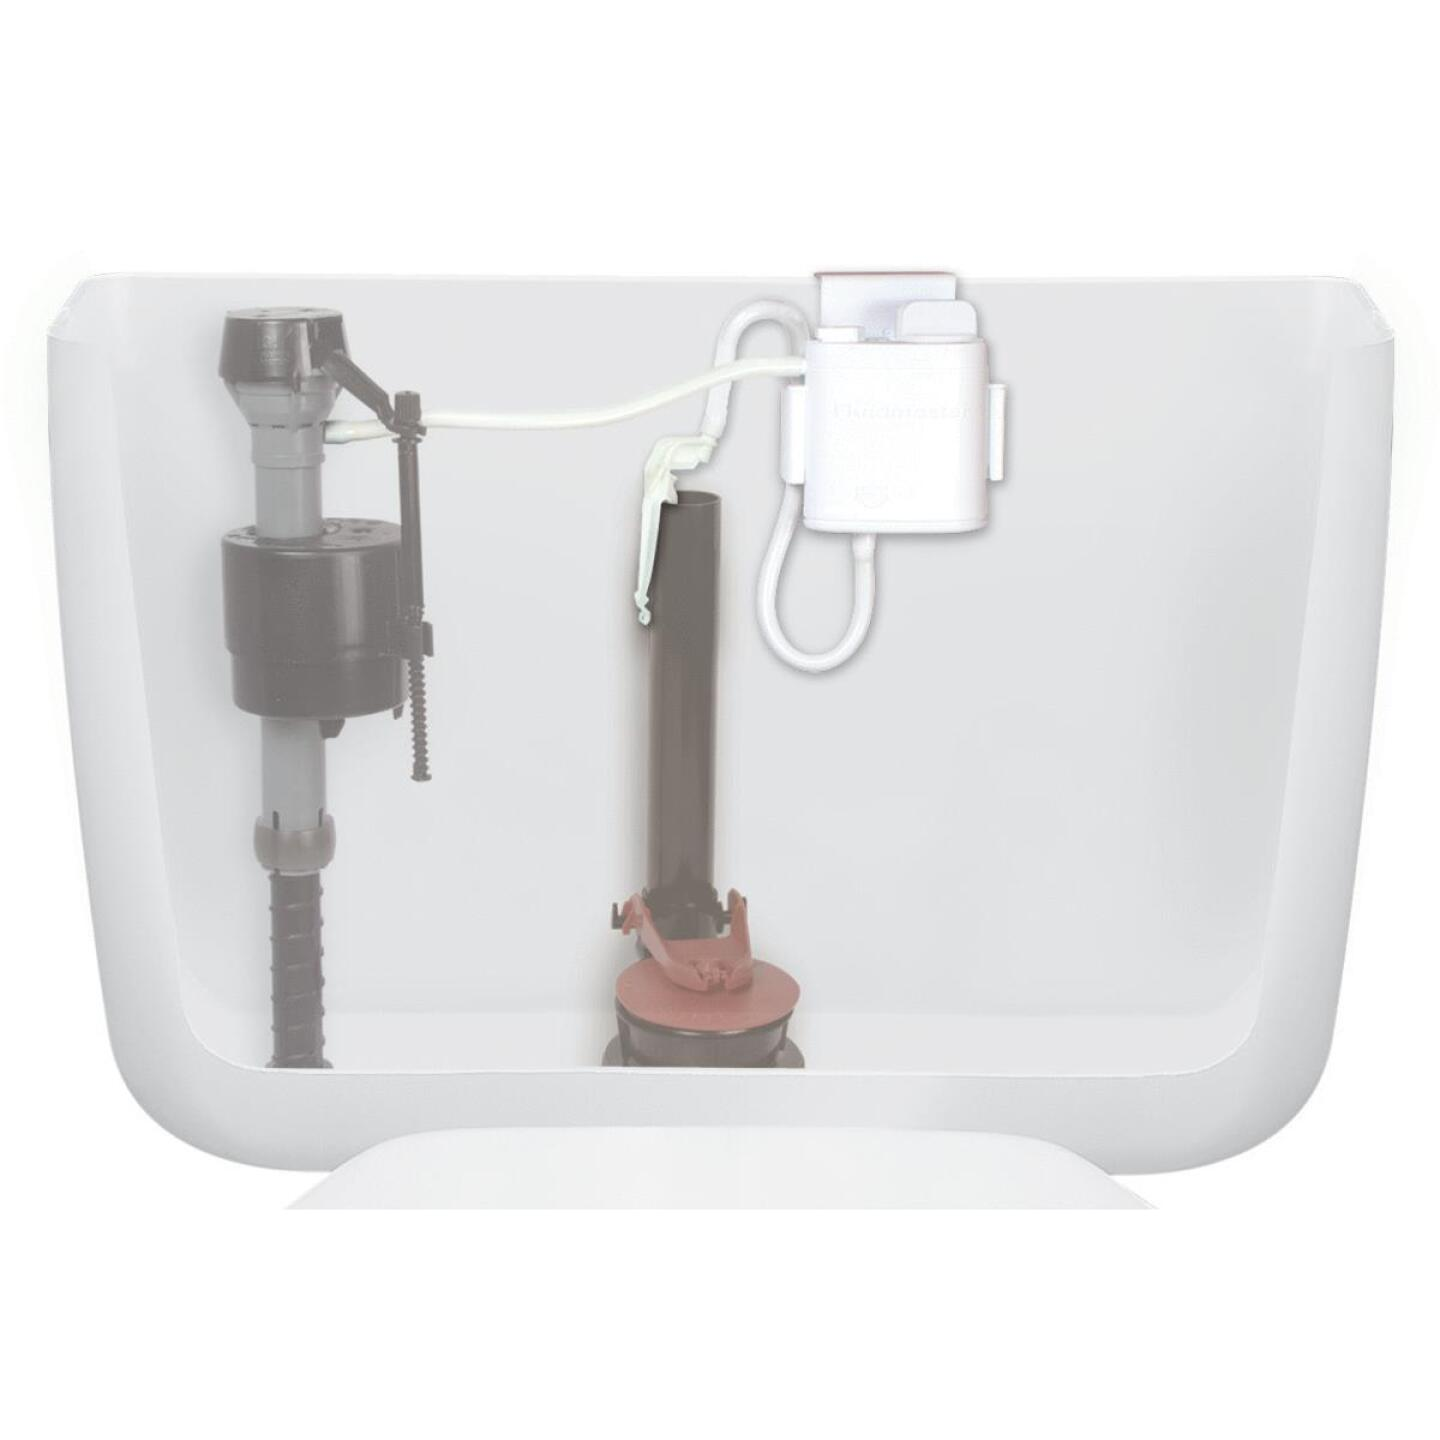 Fluidmaster Flush 'n Sparkle Automatic Toilet Bowl Cleaning System with Bleach (2-Pack) Image 3